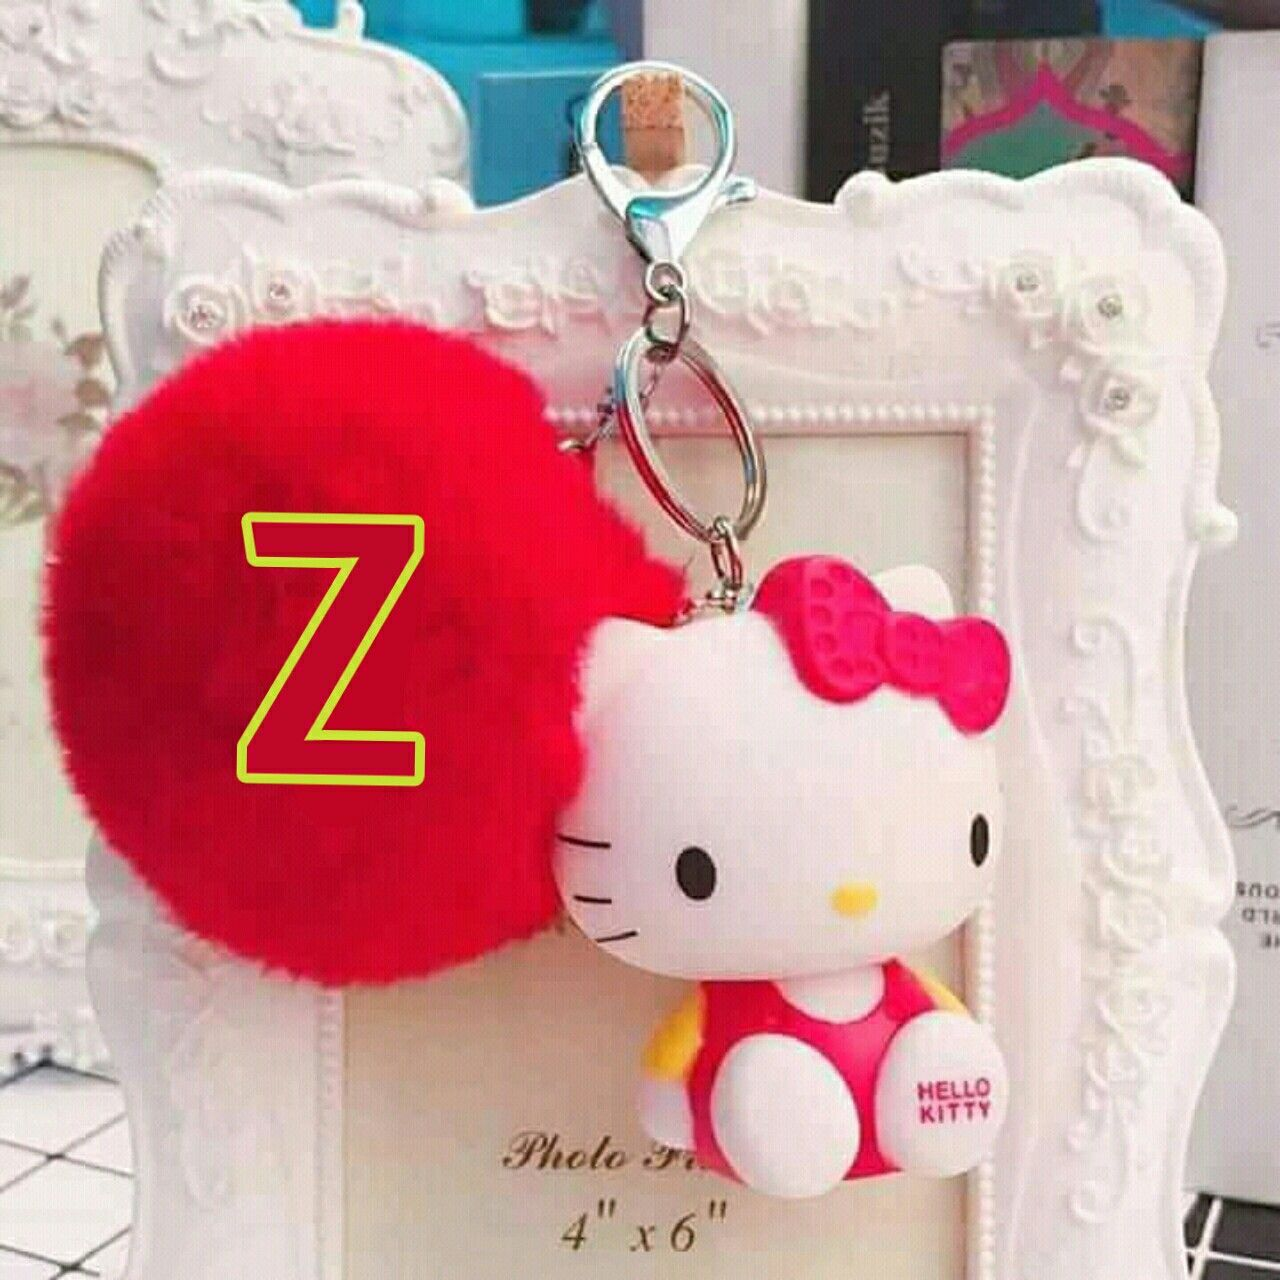 Letter Z Making By Qwrites Qaisarrafique45 Hello Kitty Keychain Hello Kitty Photos Hello Kitty